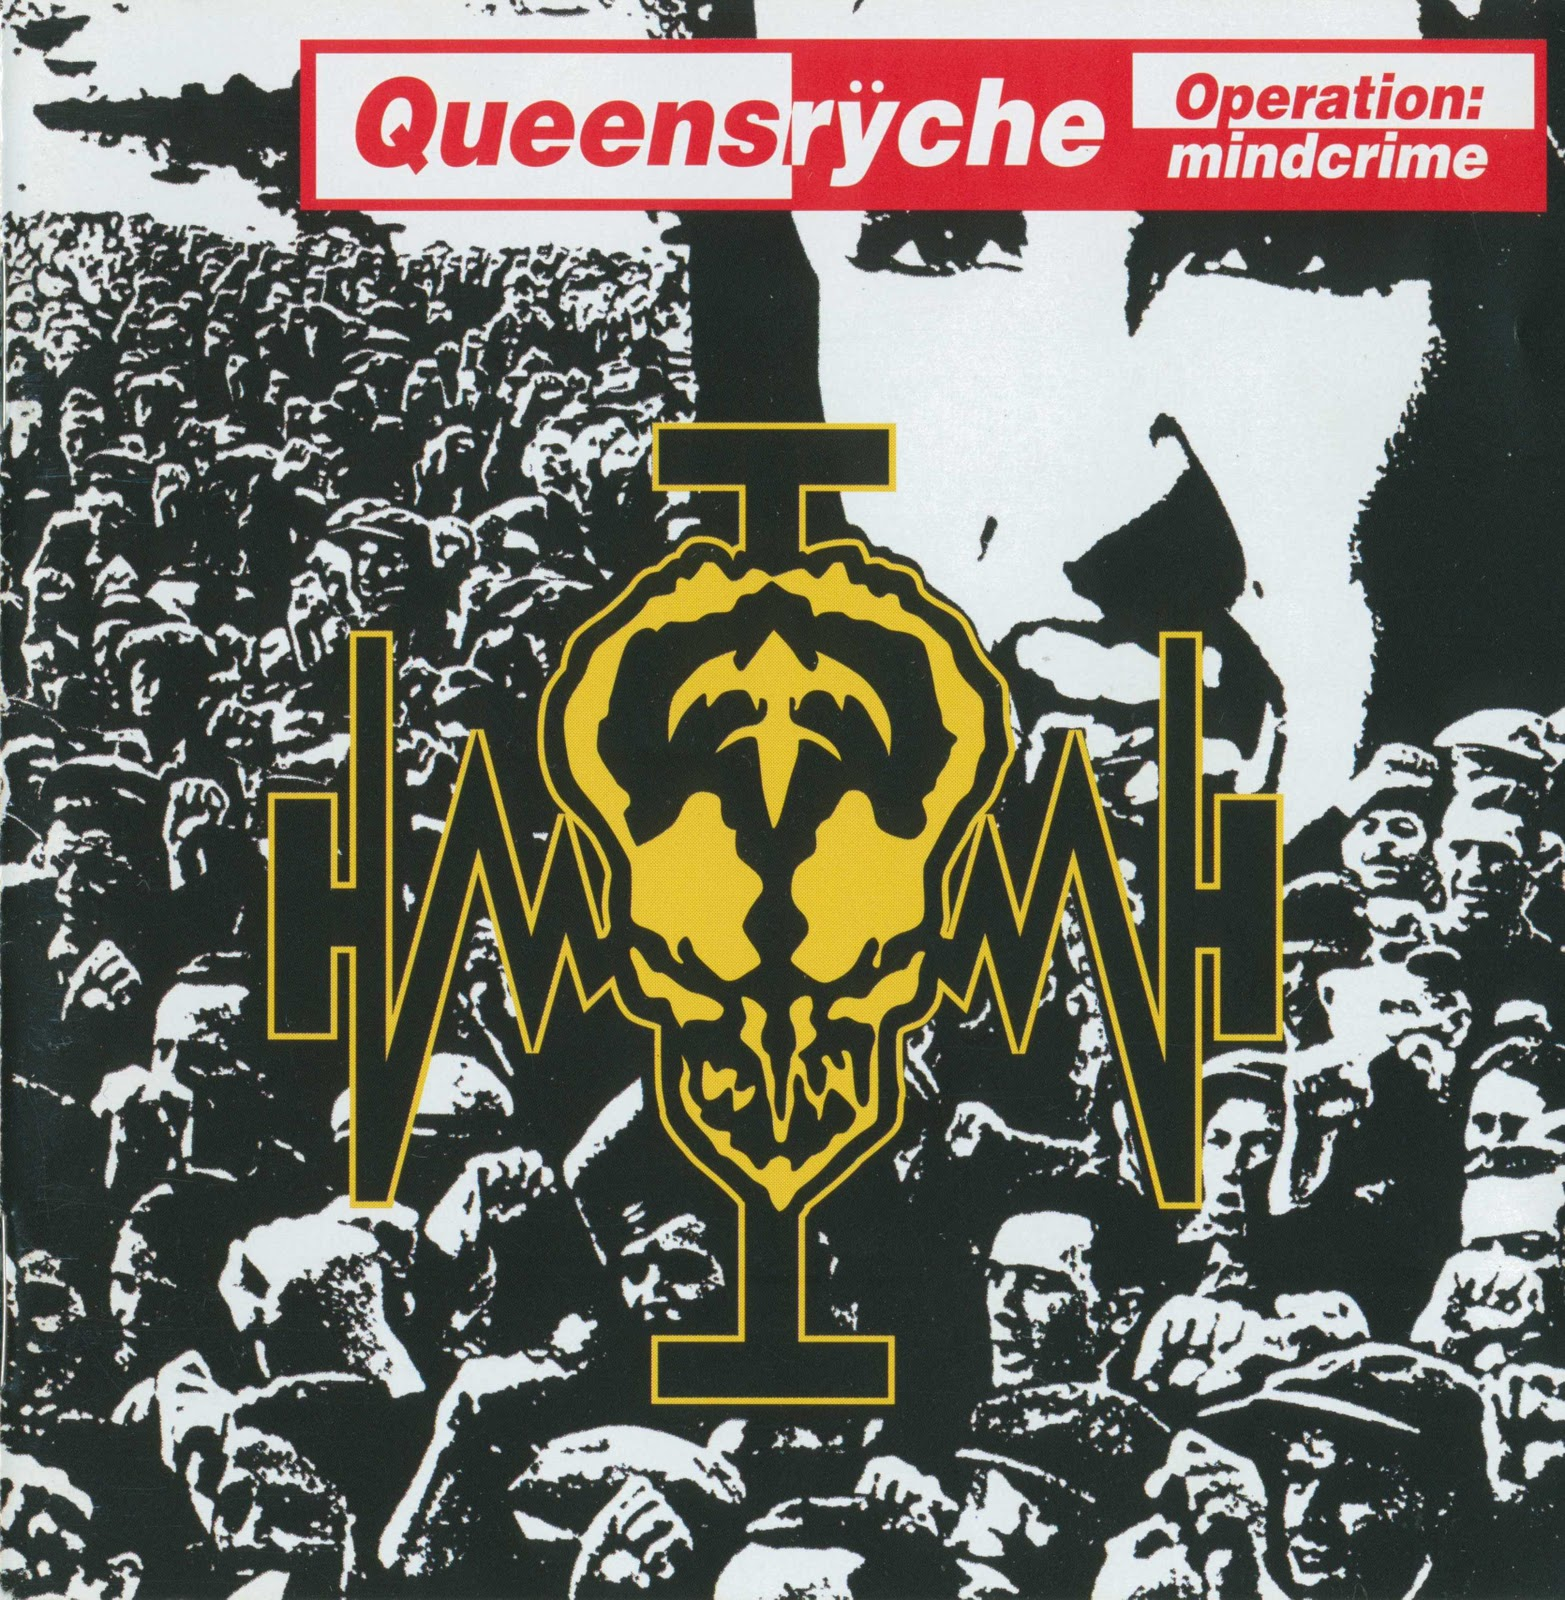 queensryche operation midcrime